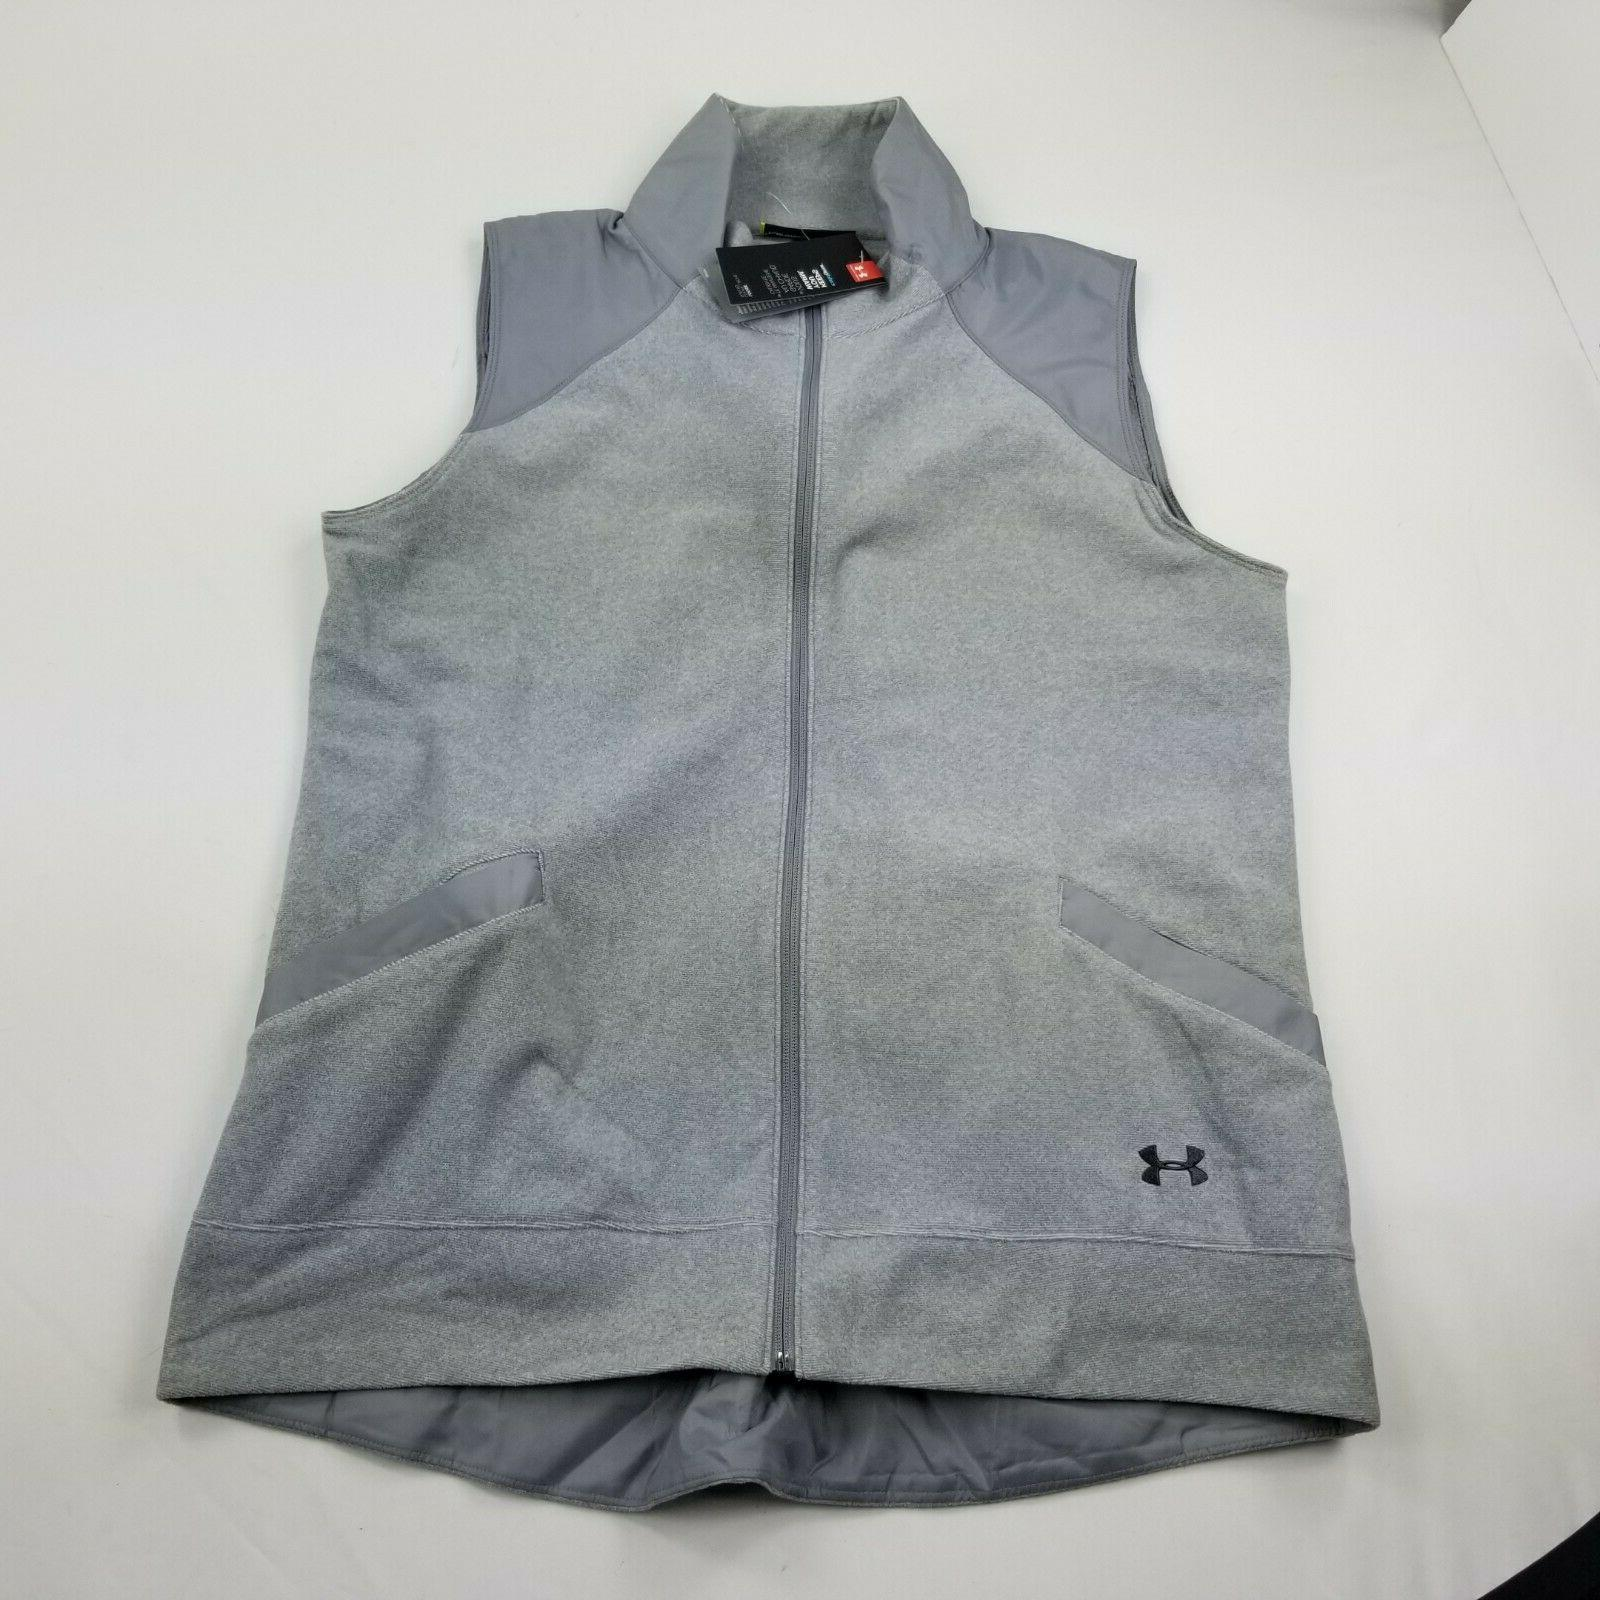 2xl women s gray vest sleeveless loose